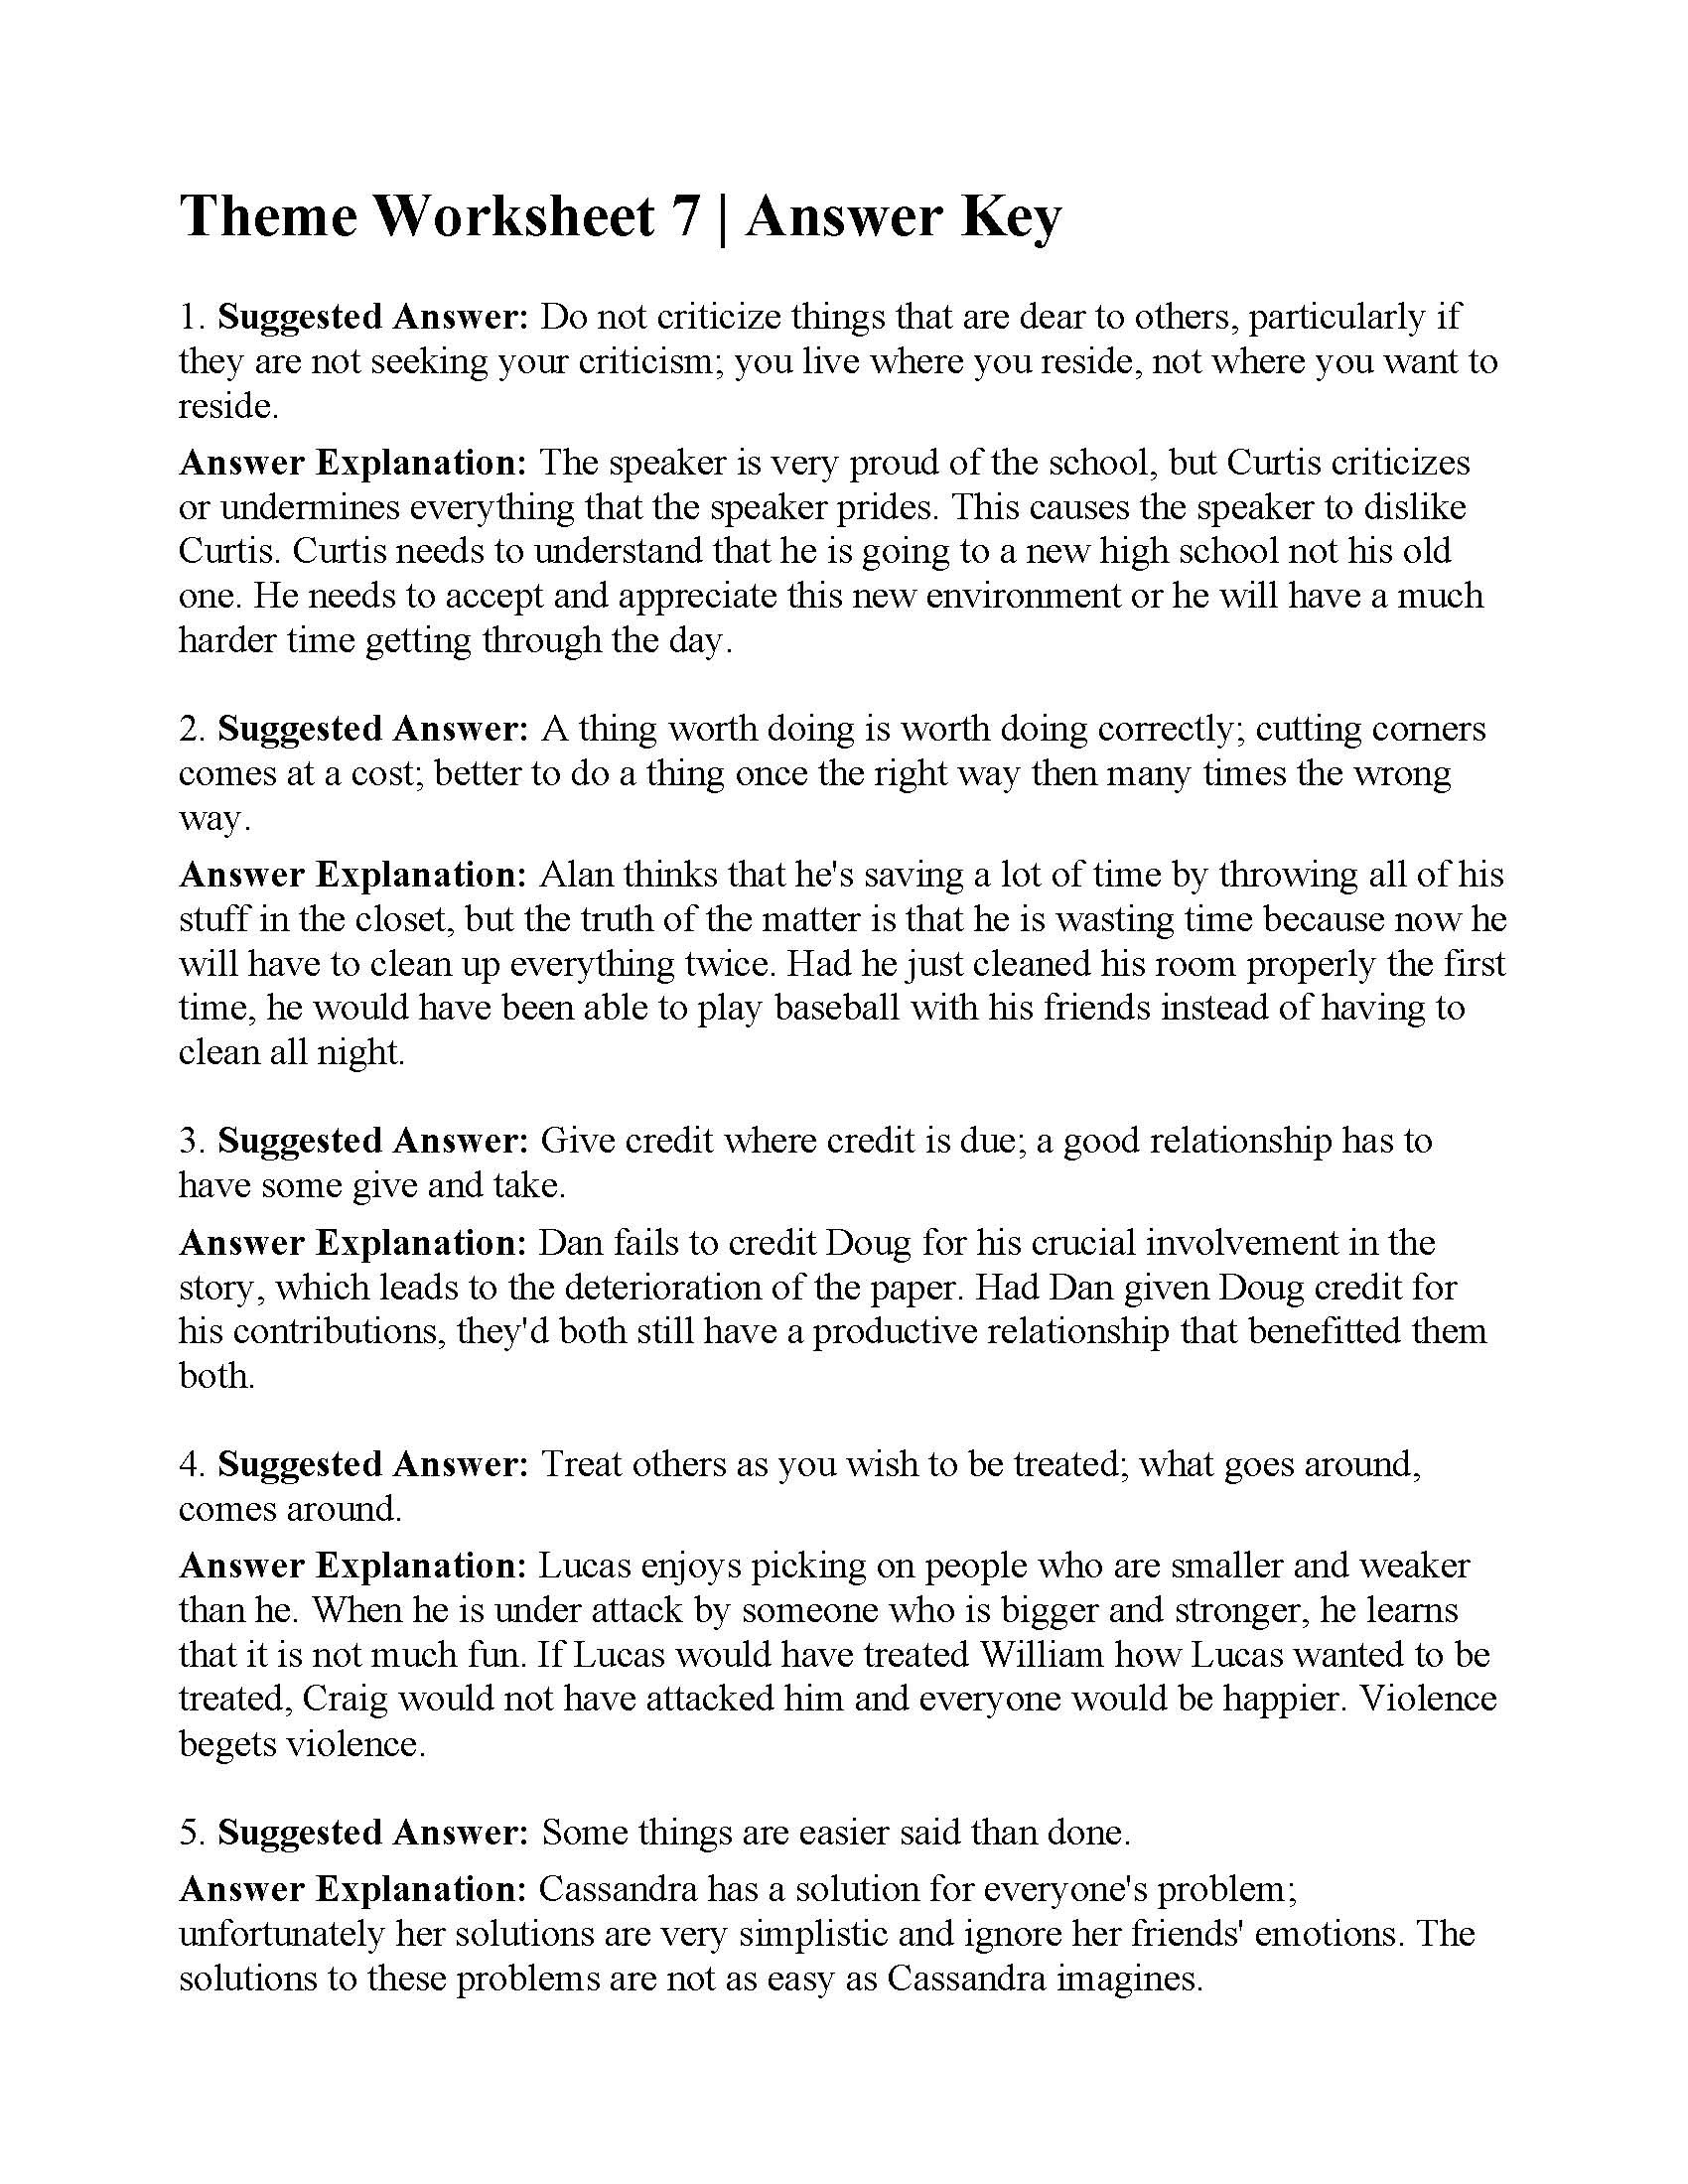 5th Grade theme Worksheets theme Worksheet 7